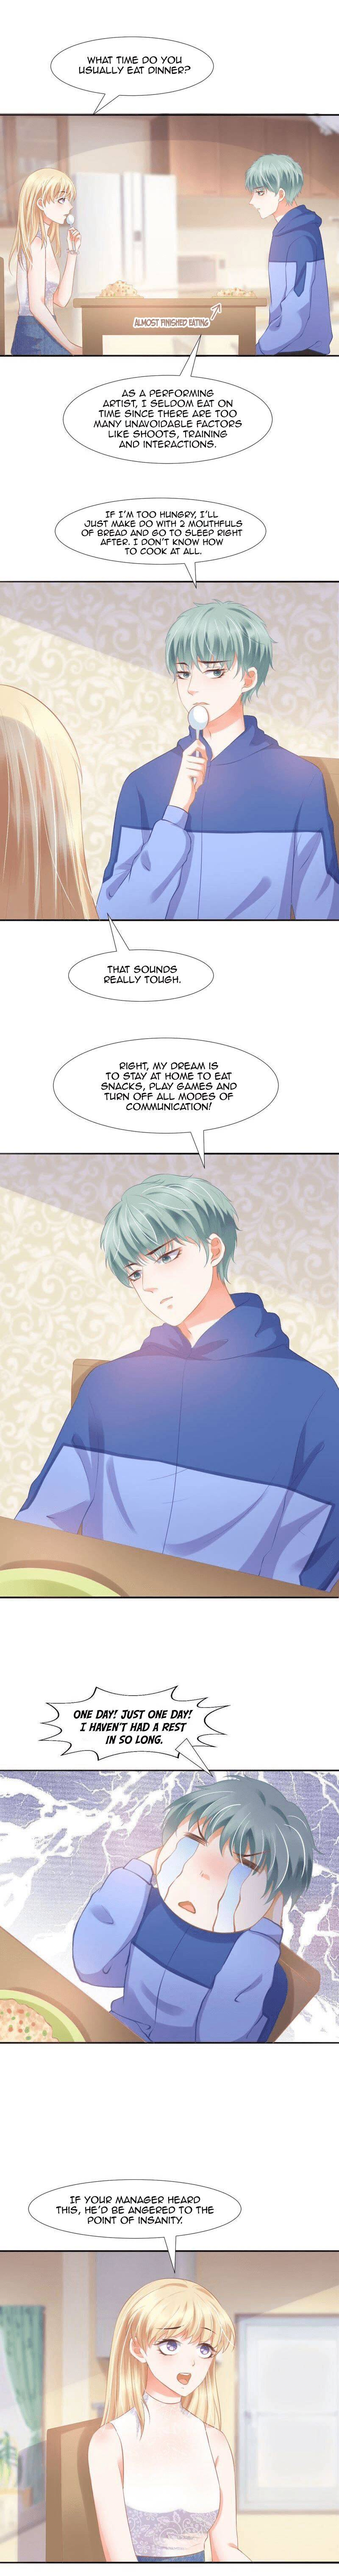 Prince Charming Has His Eyes on Me - chapter 59 - #2